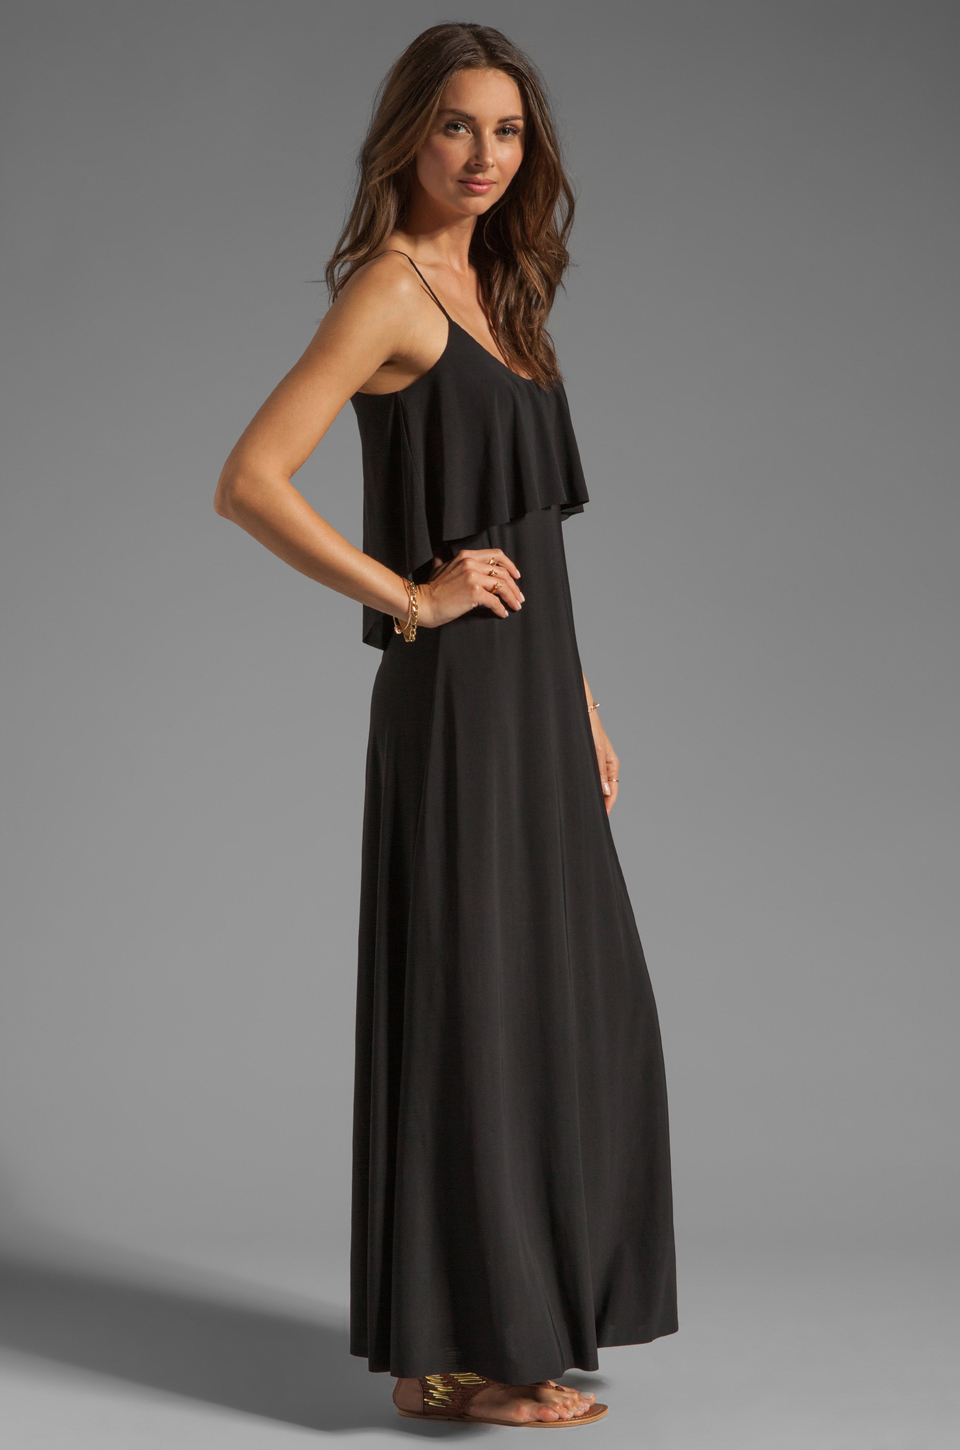 T-Bags LosAngeles Detail Back Maxi Dress in Black